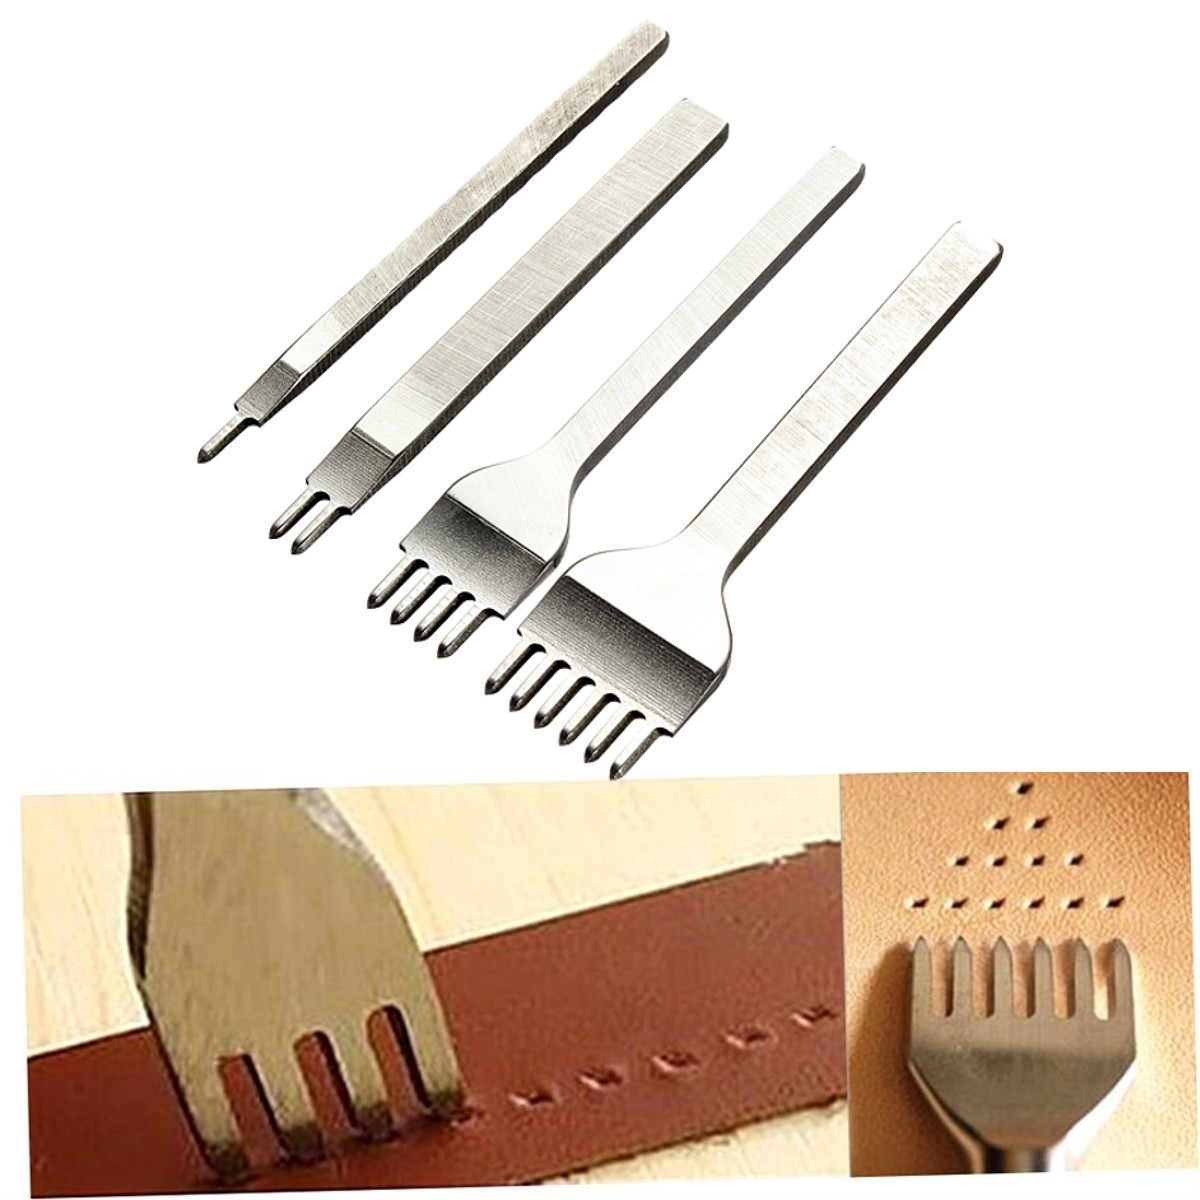 4 Style Leather Craft Tools Hole Punches Lacing Stitching Punch Tool Prong 4mm